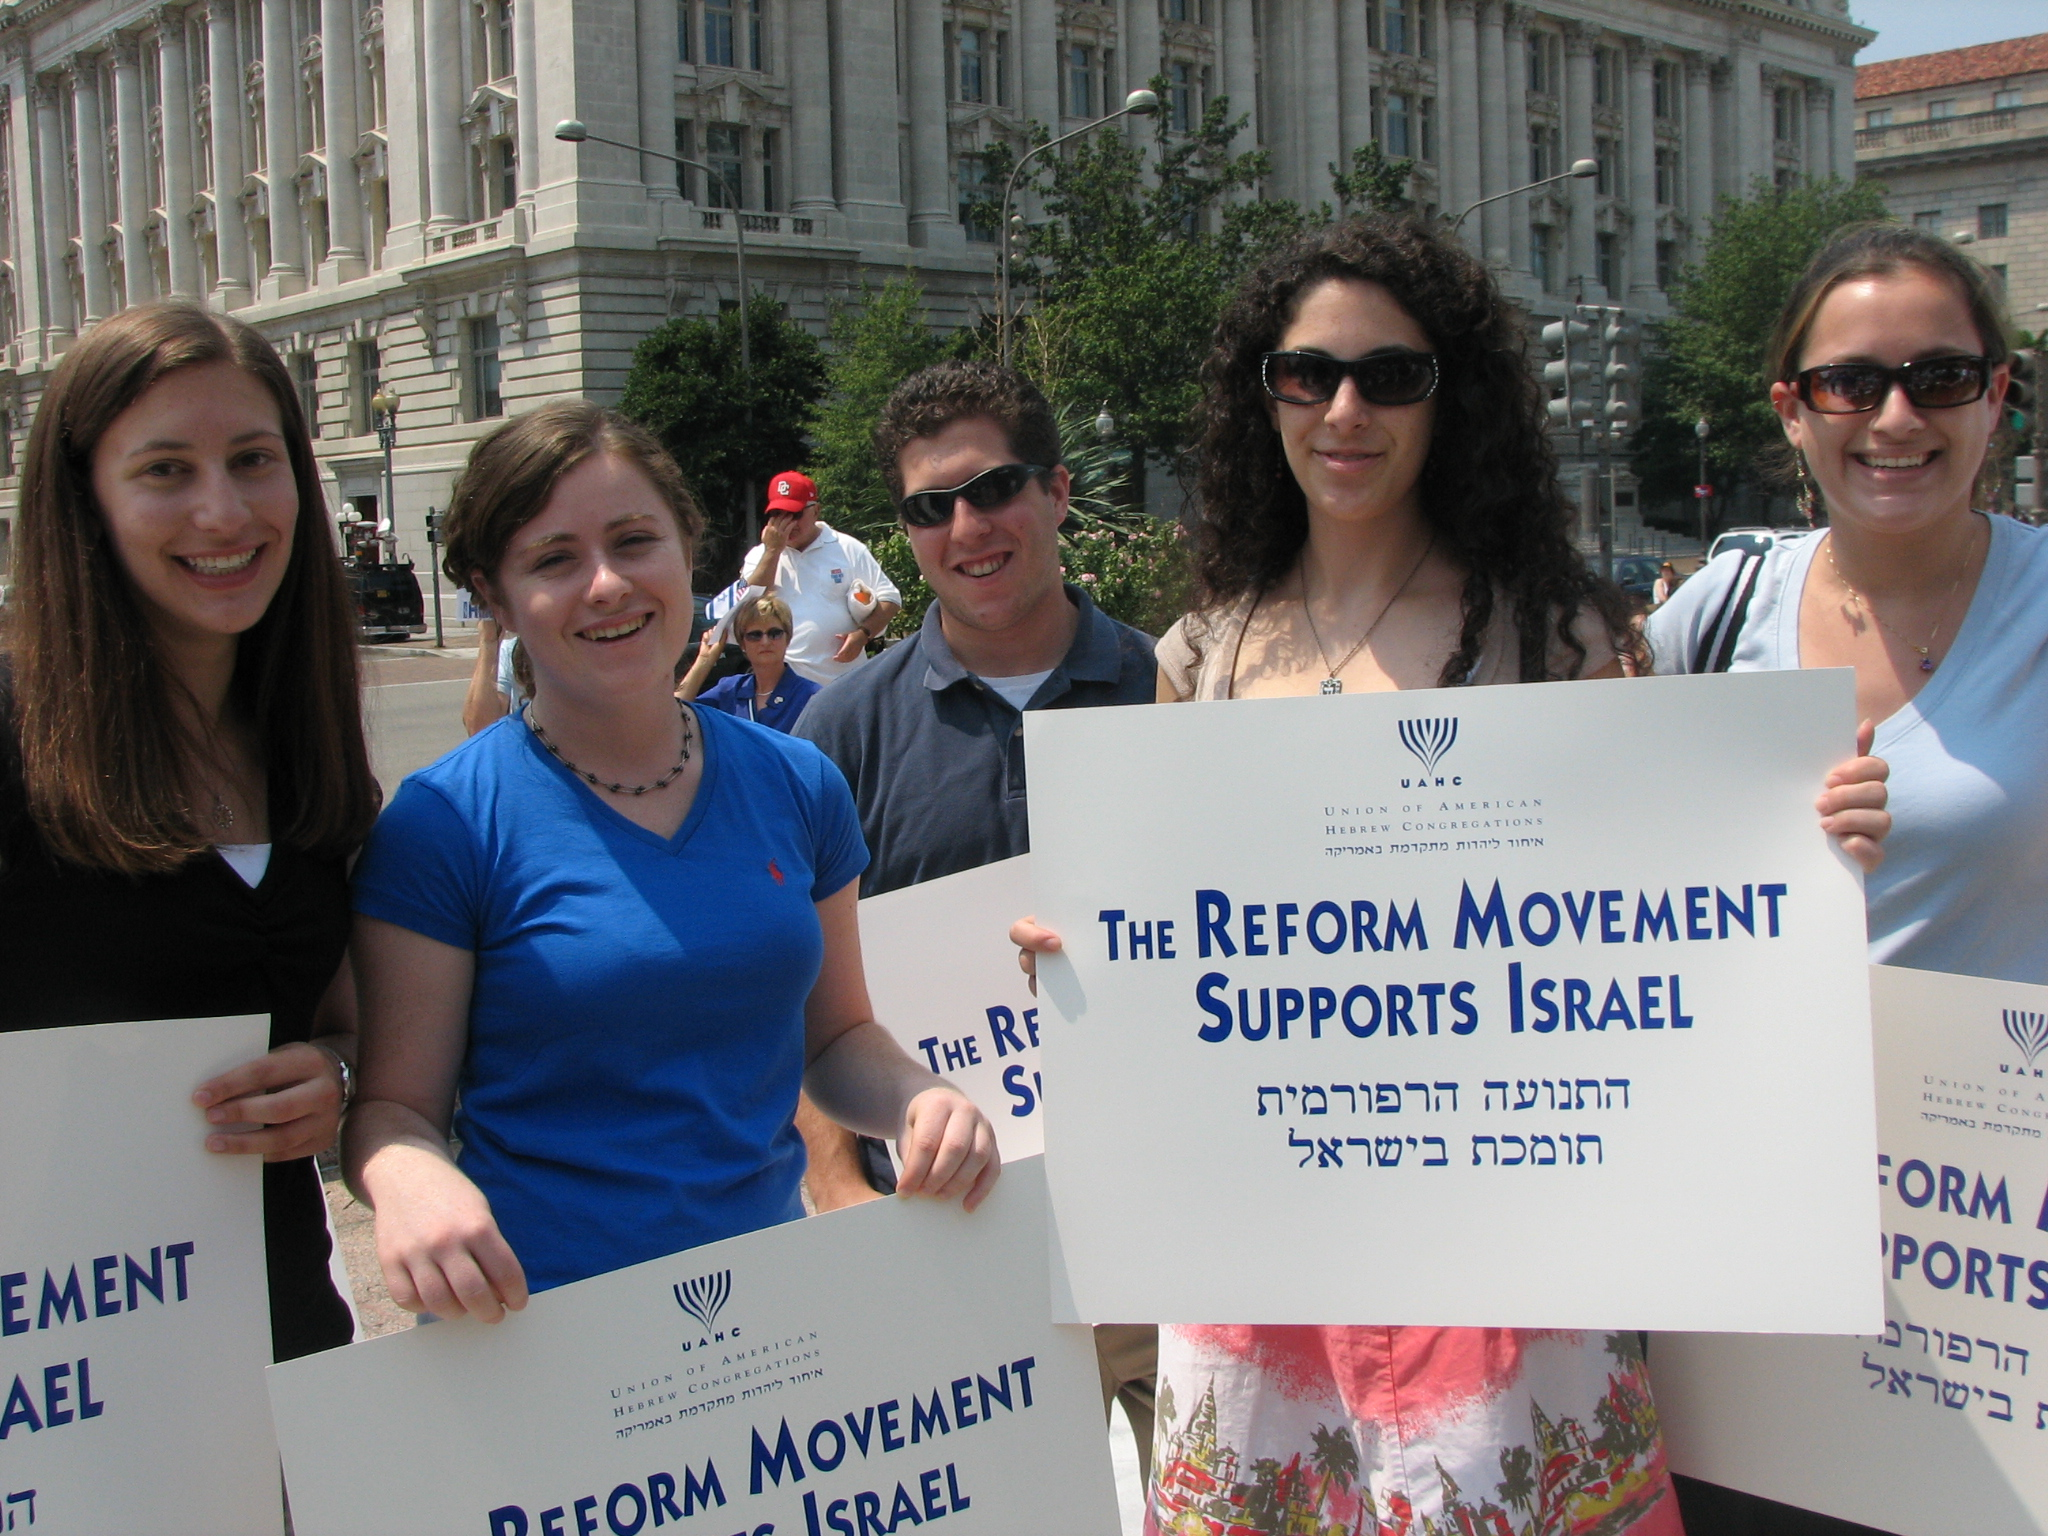 Reform Jews rally in support of Israel